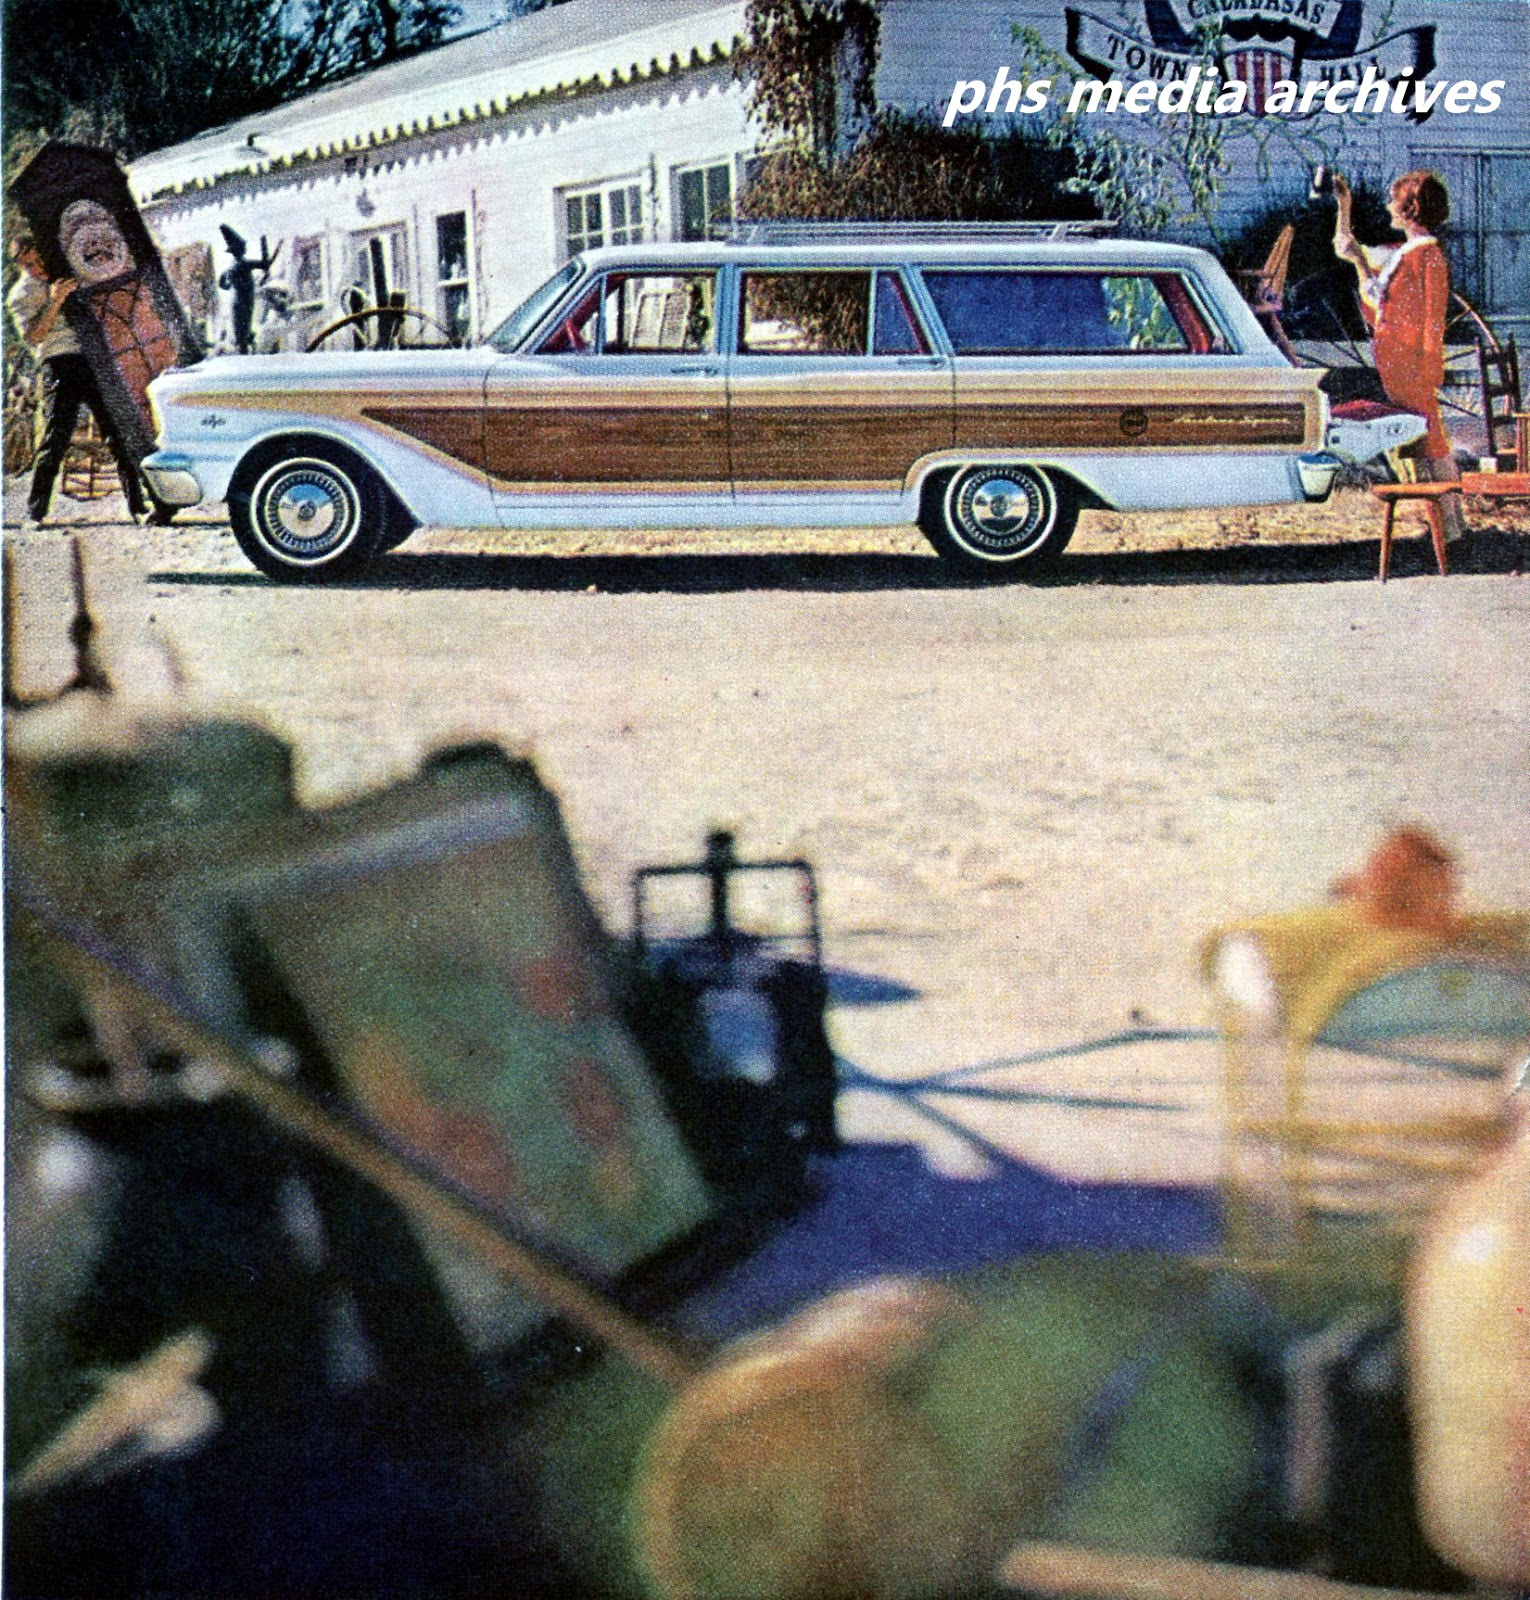 Ford Station Wagon Line Up 1963 Phscollectorcarworld 1960 Studebaker Lark Wiring Diagram This Is A Fairlane Squire Doing Antique Round Duty